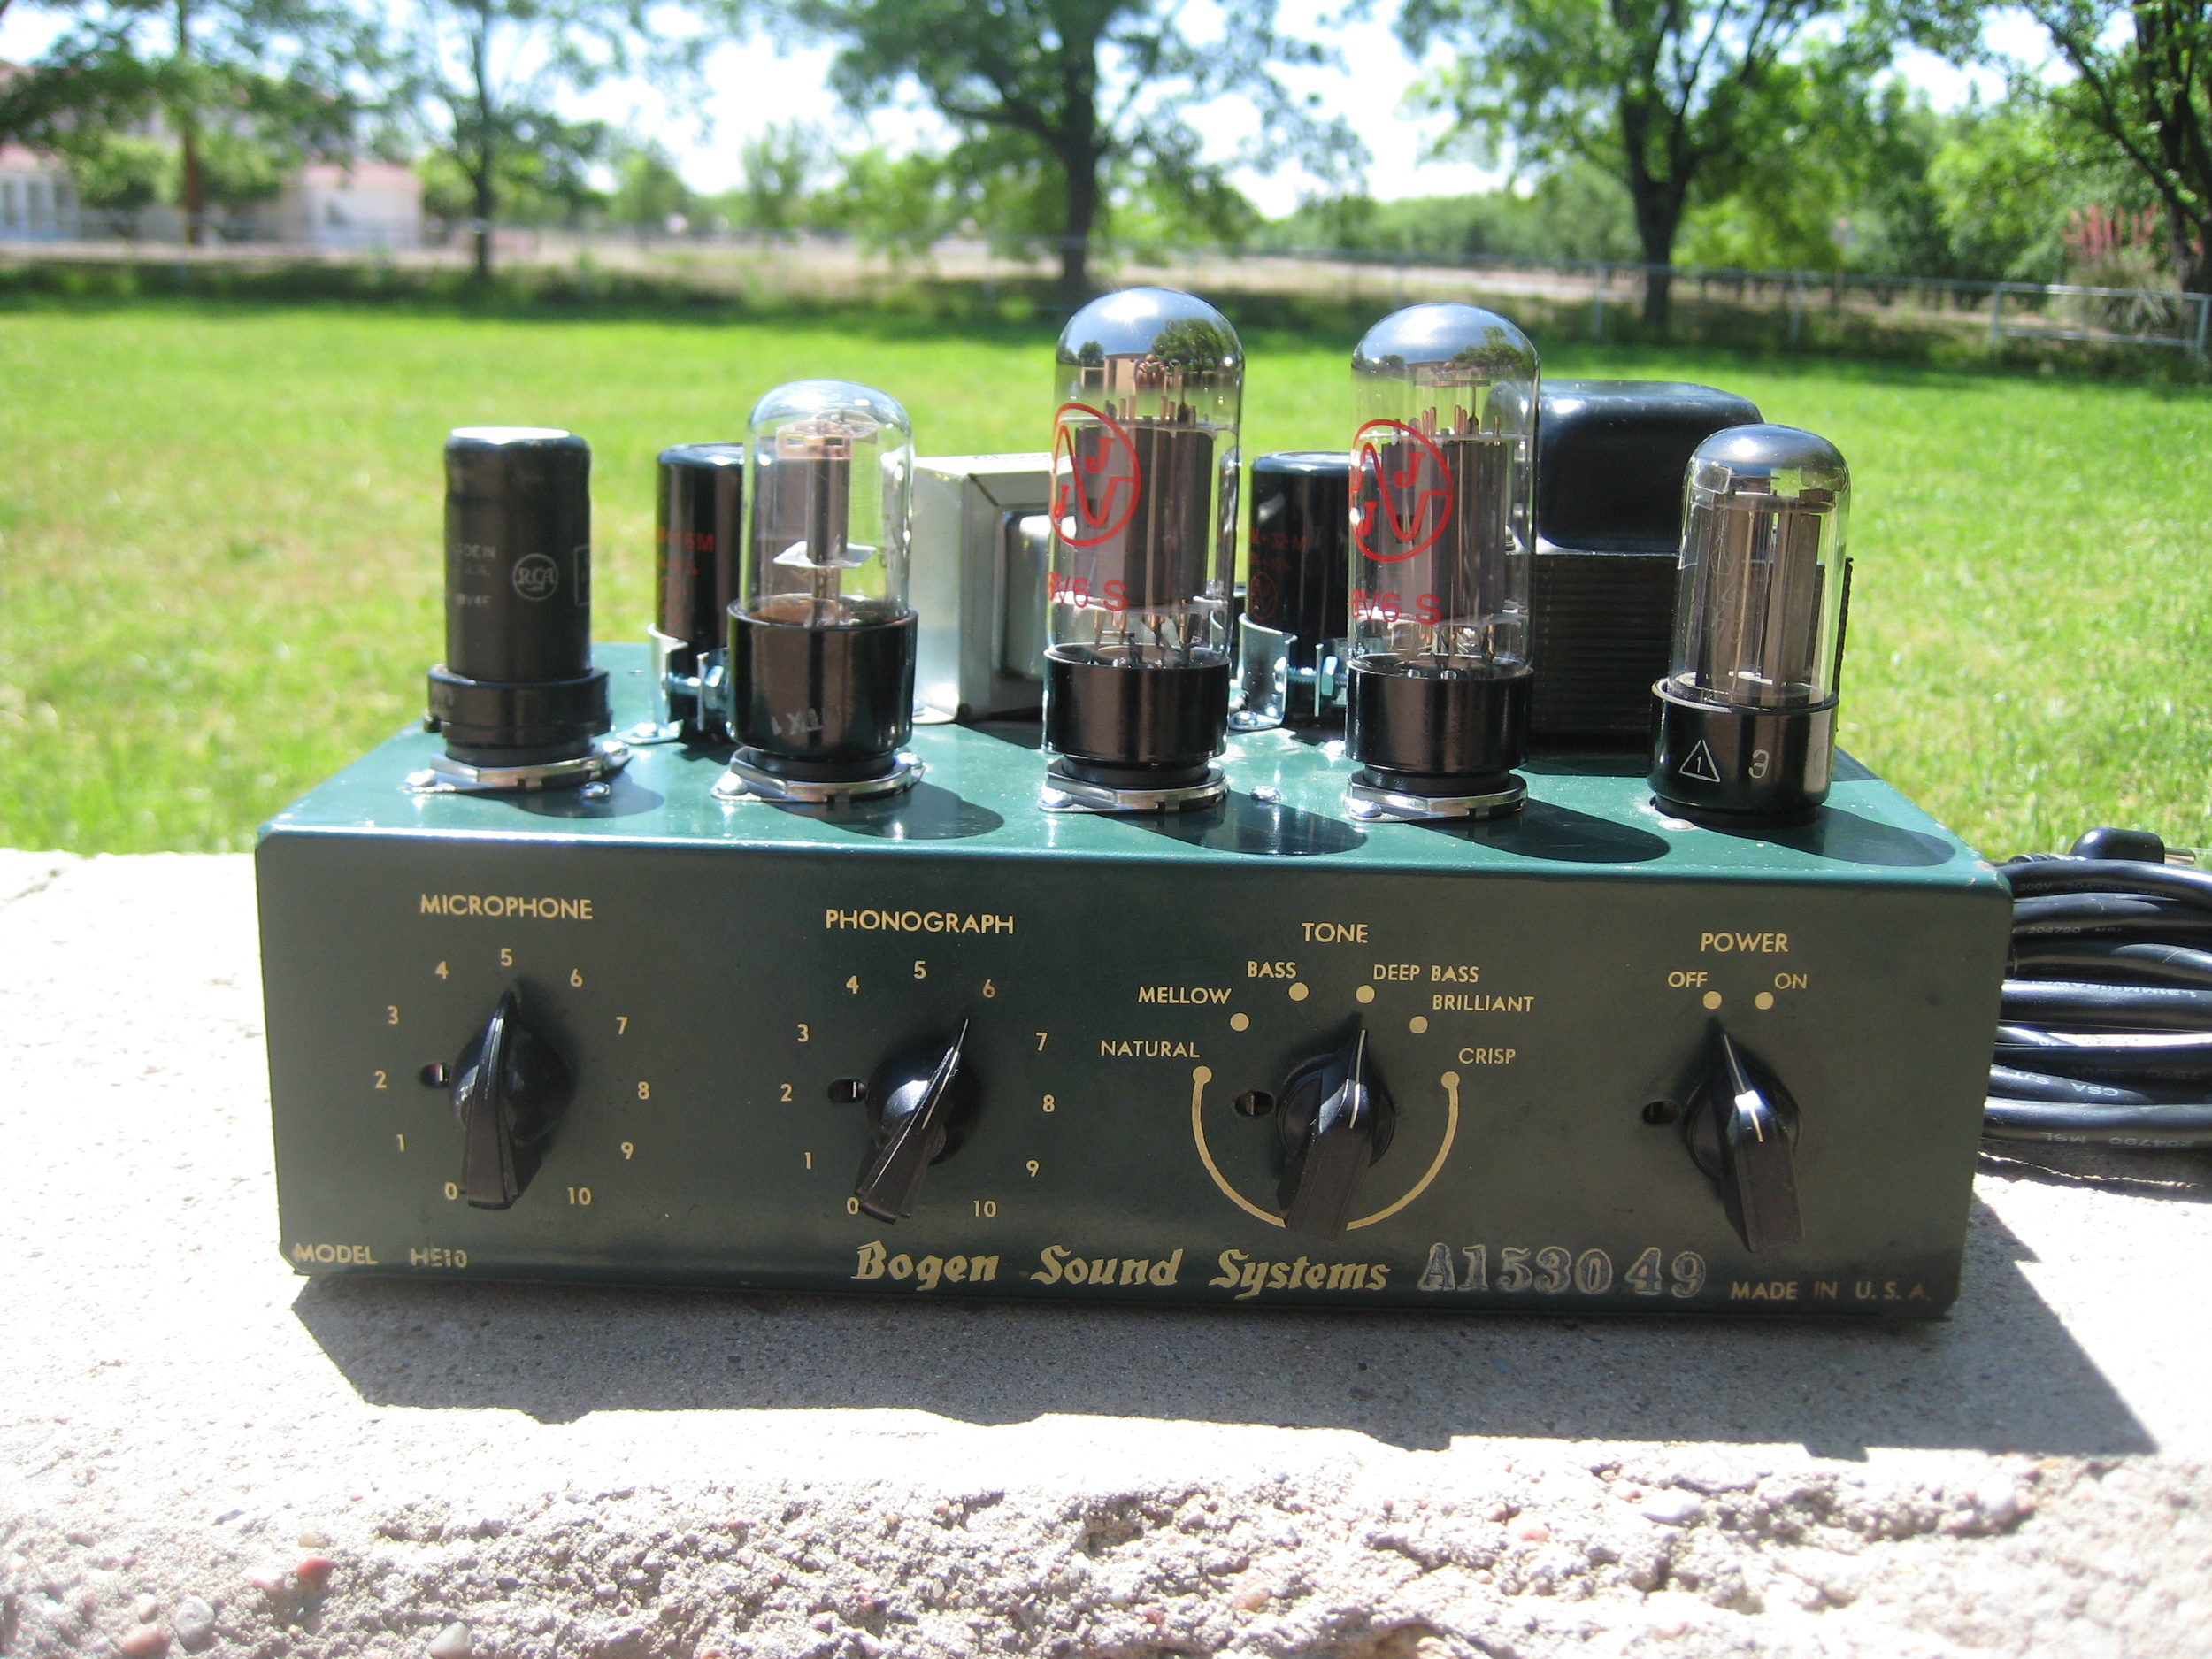 Bogen Deluxe/Supreme Conversion Amp. This one has a 6 way voicing switch that goes fro slicing treble to Bassman thick!